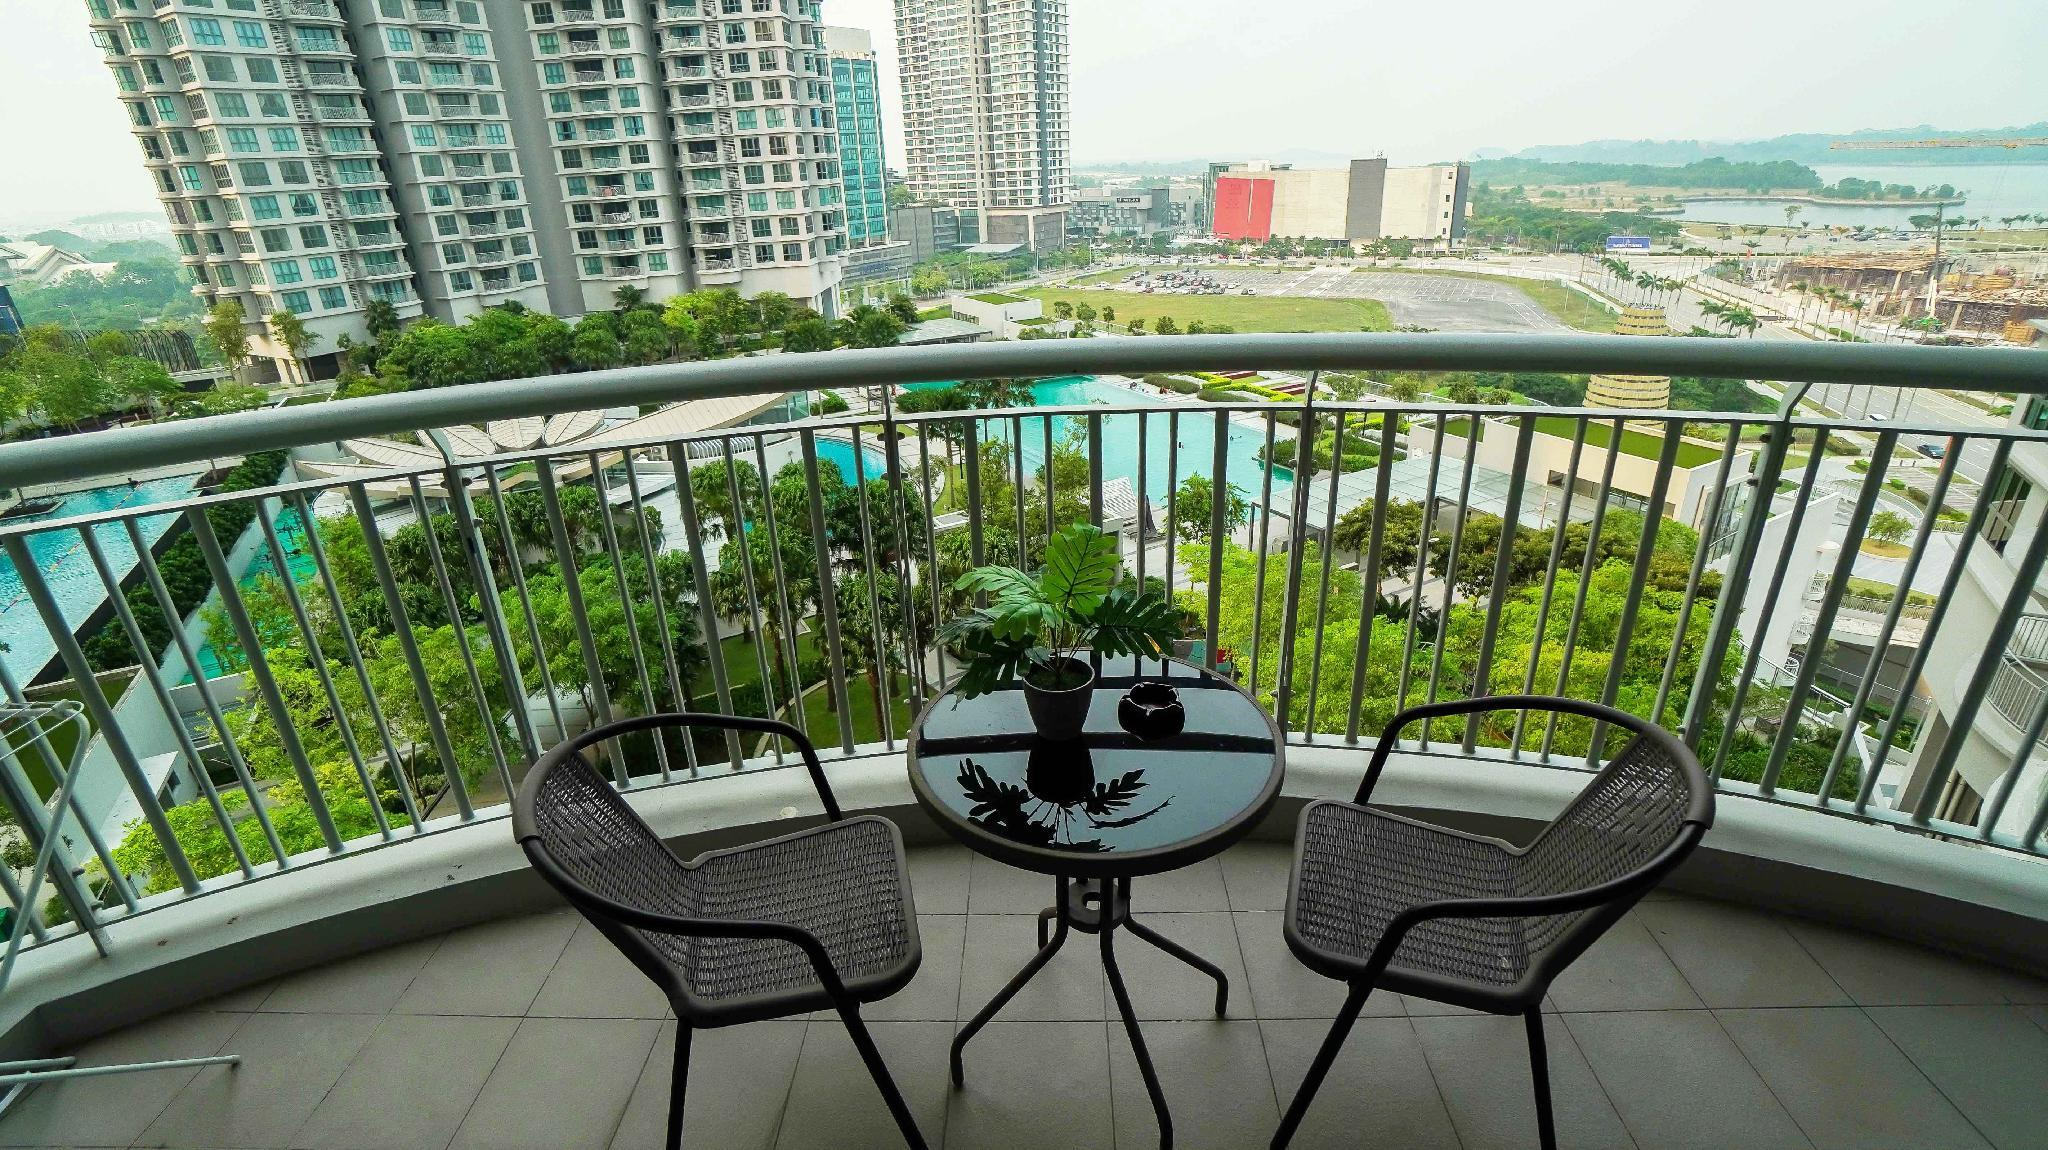 TROPICAL Condo With Dope View In Puteri Harbour